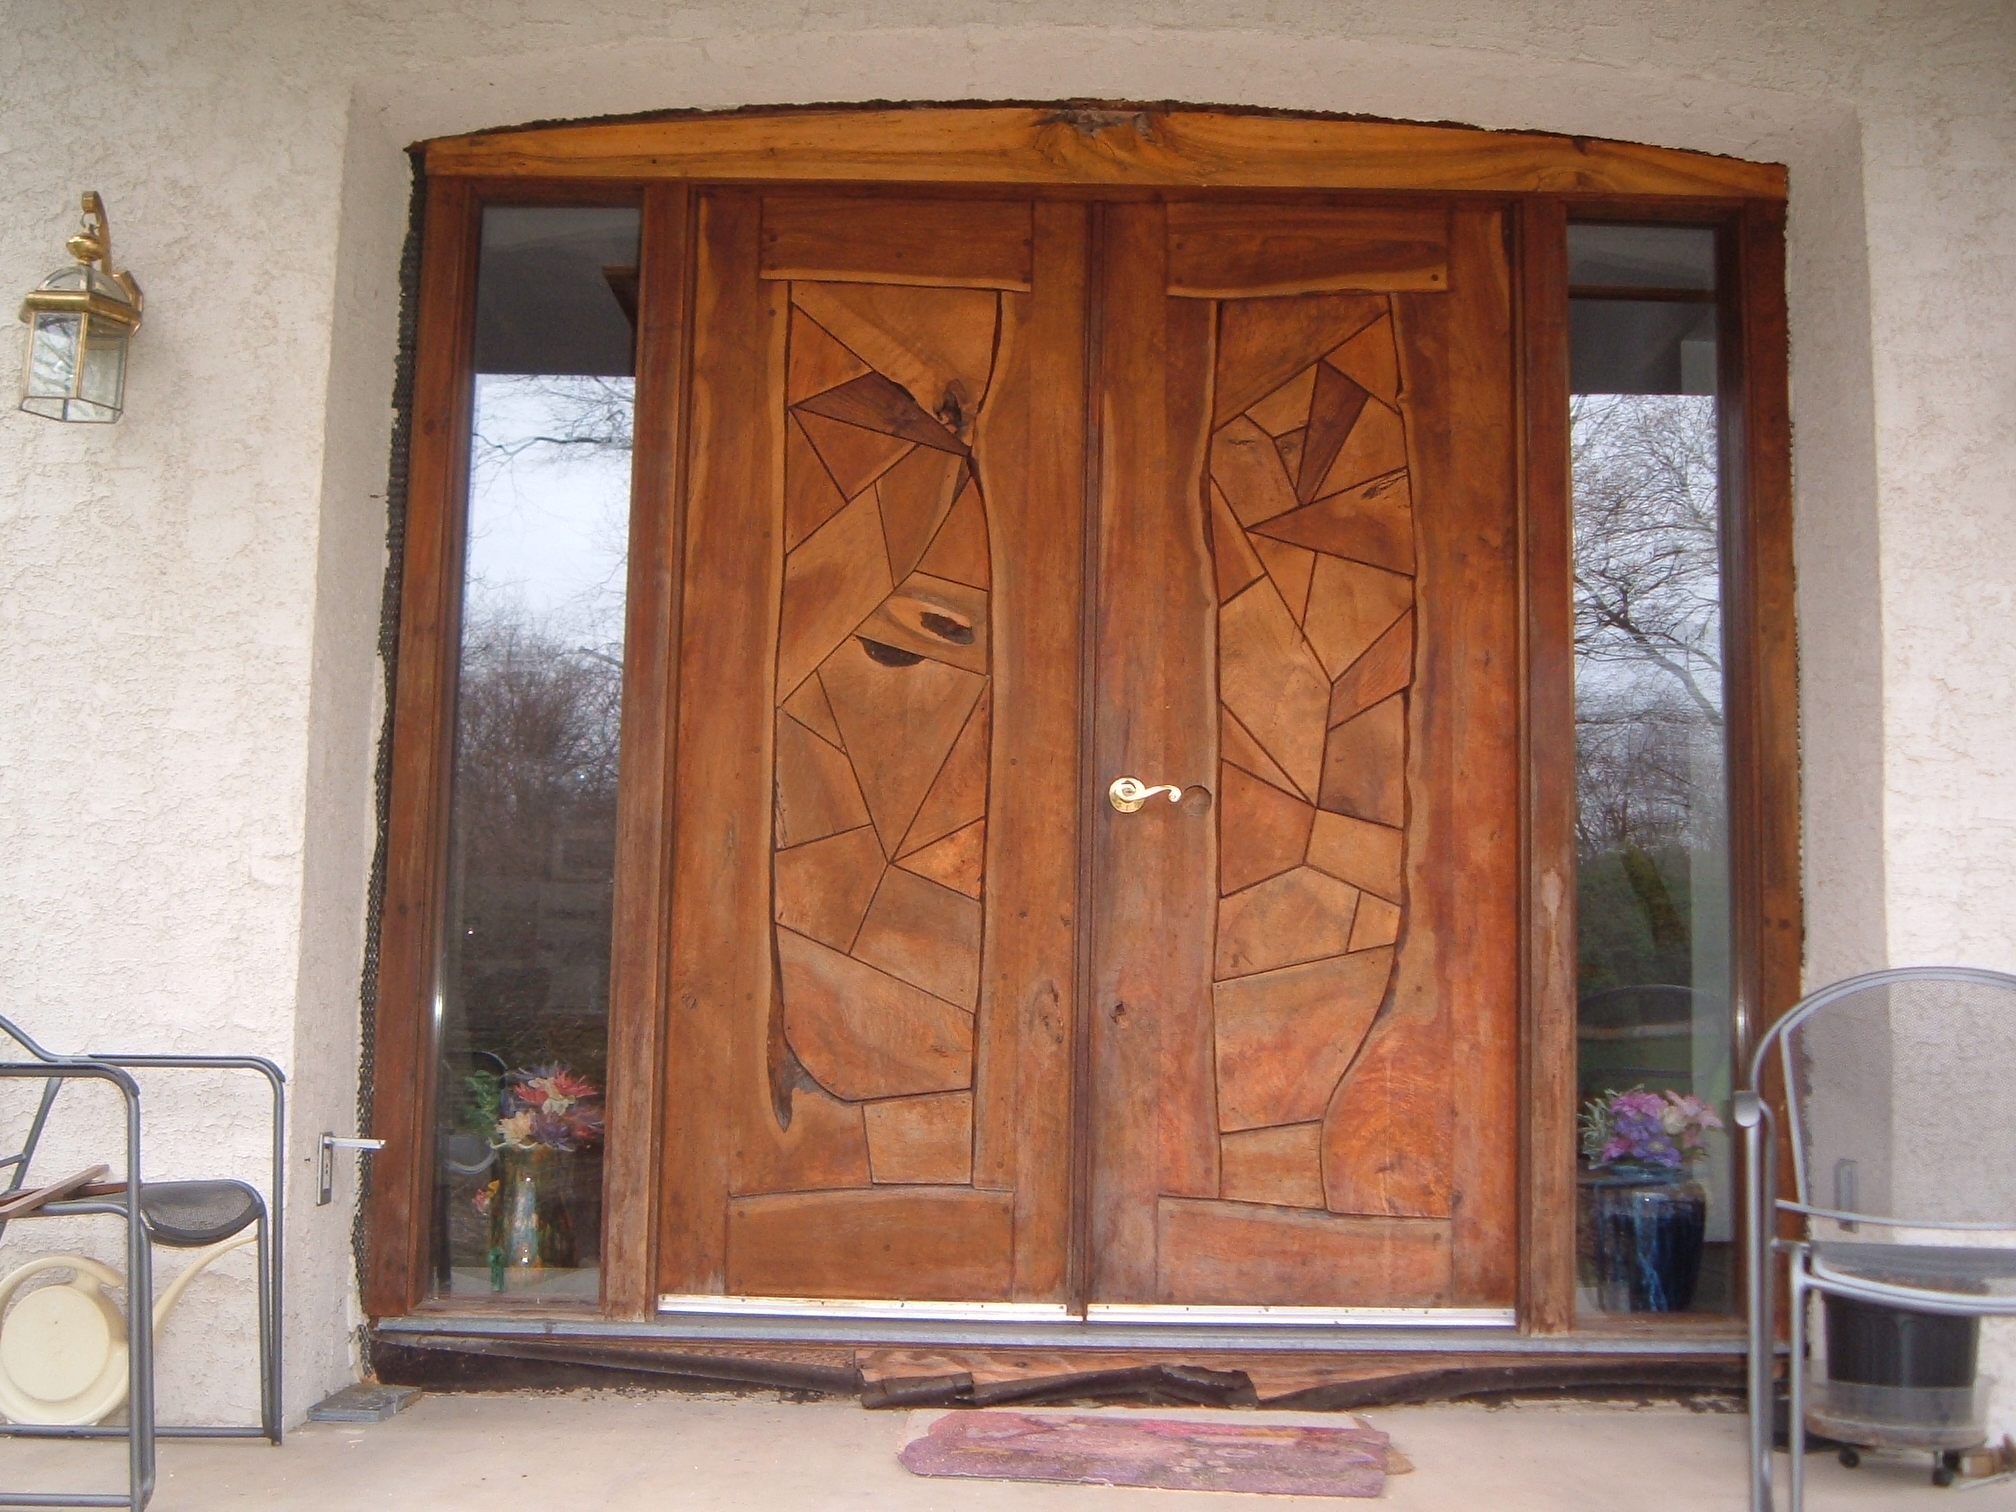 Wooden Main Door Designs 2016 x 1512 · 1476 kB · jpeg